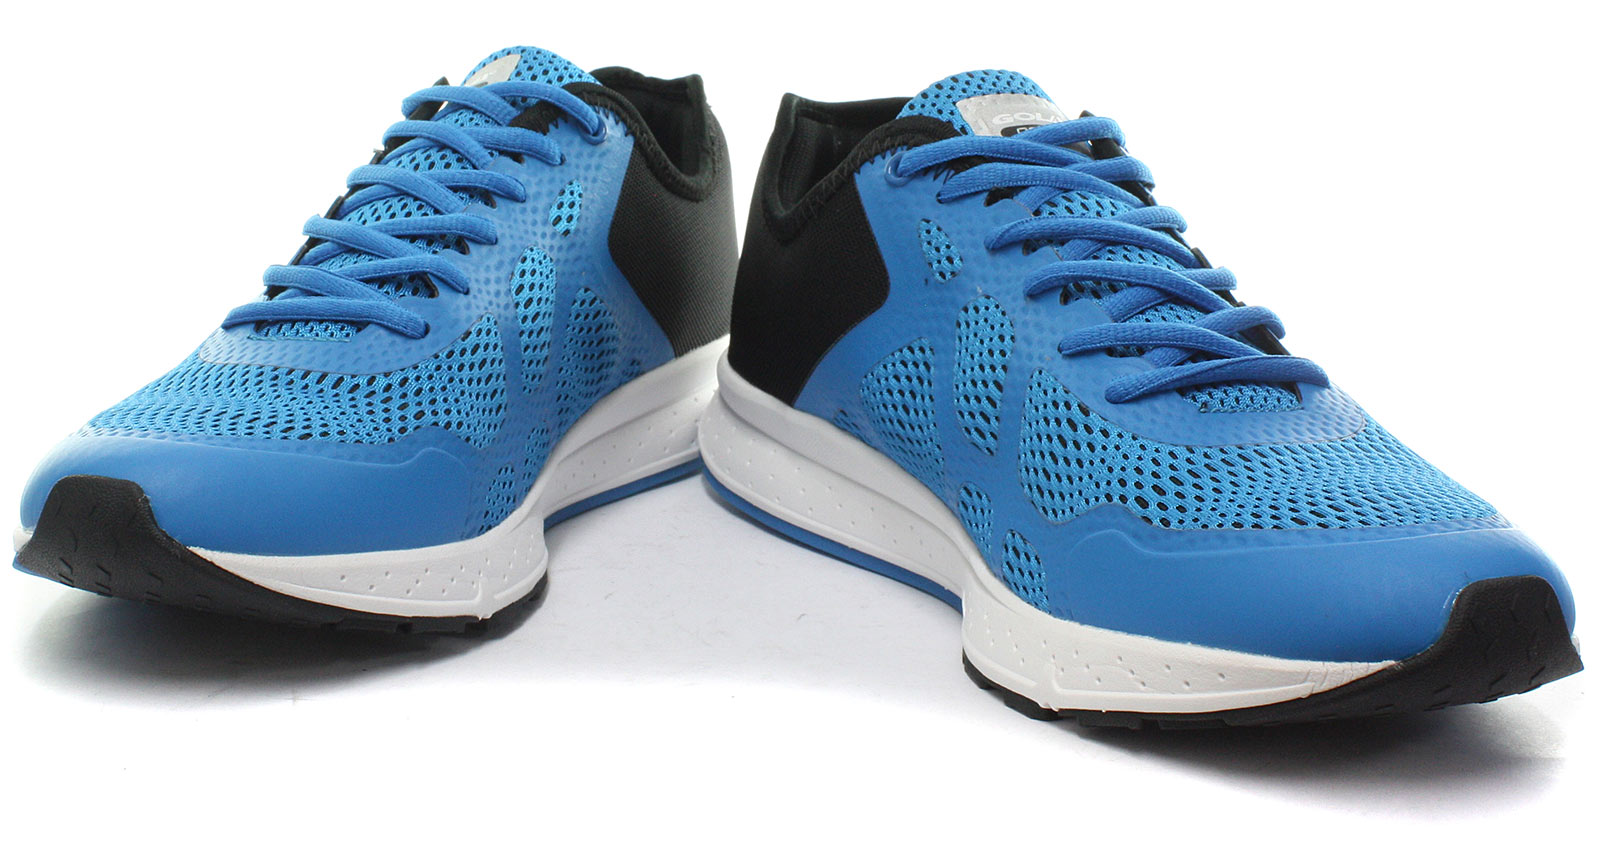 Sizes black Triton 2 Active Trainers Mens All Blue Gola New Fitness wqCg7vxv